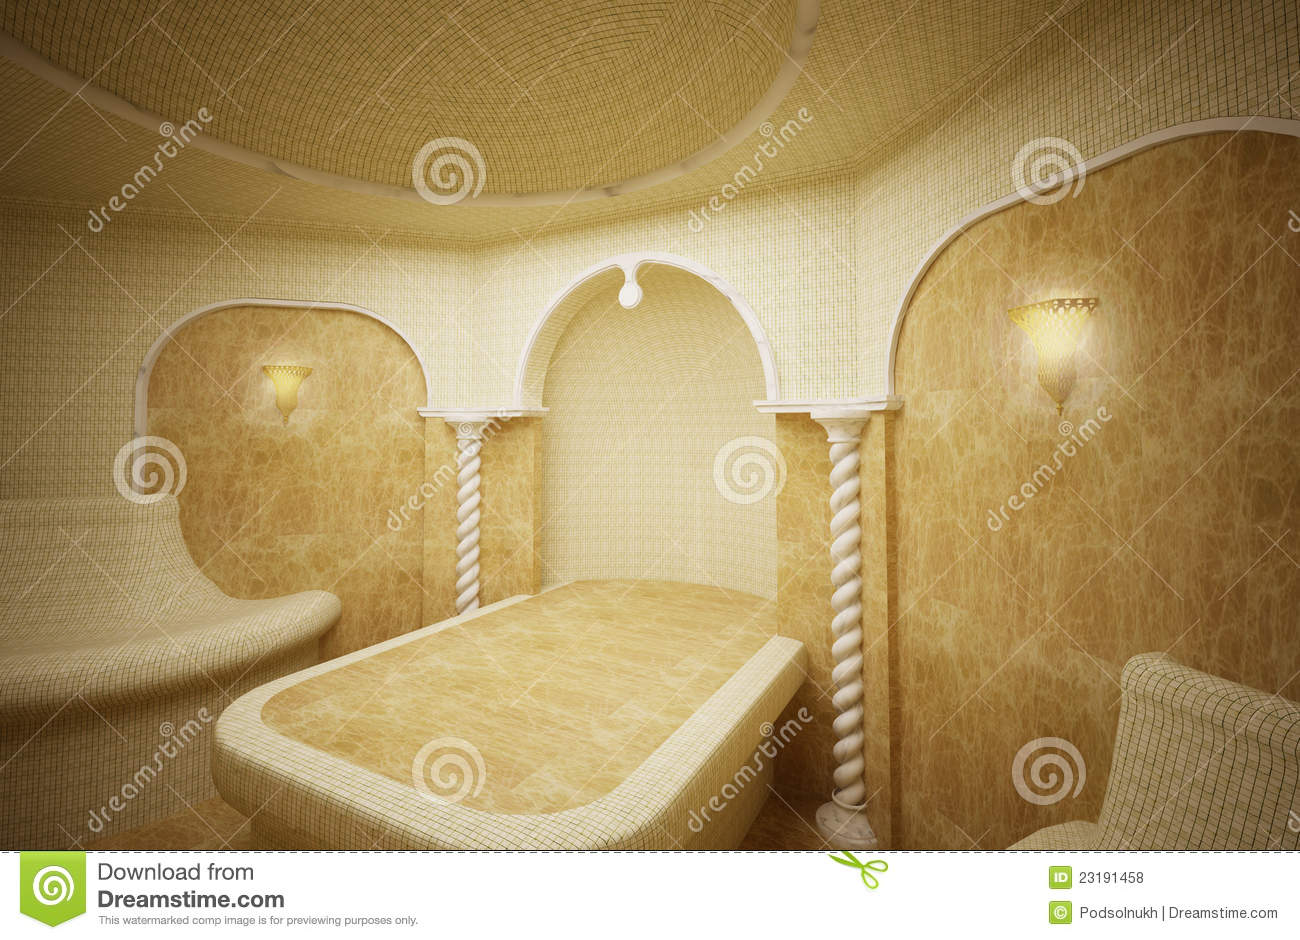 hammam turkish steam room 3 d stock illustration illustration of marble stone 23191458. Black Bedroom Furniture Sets. Home Design Ideas